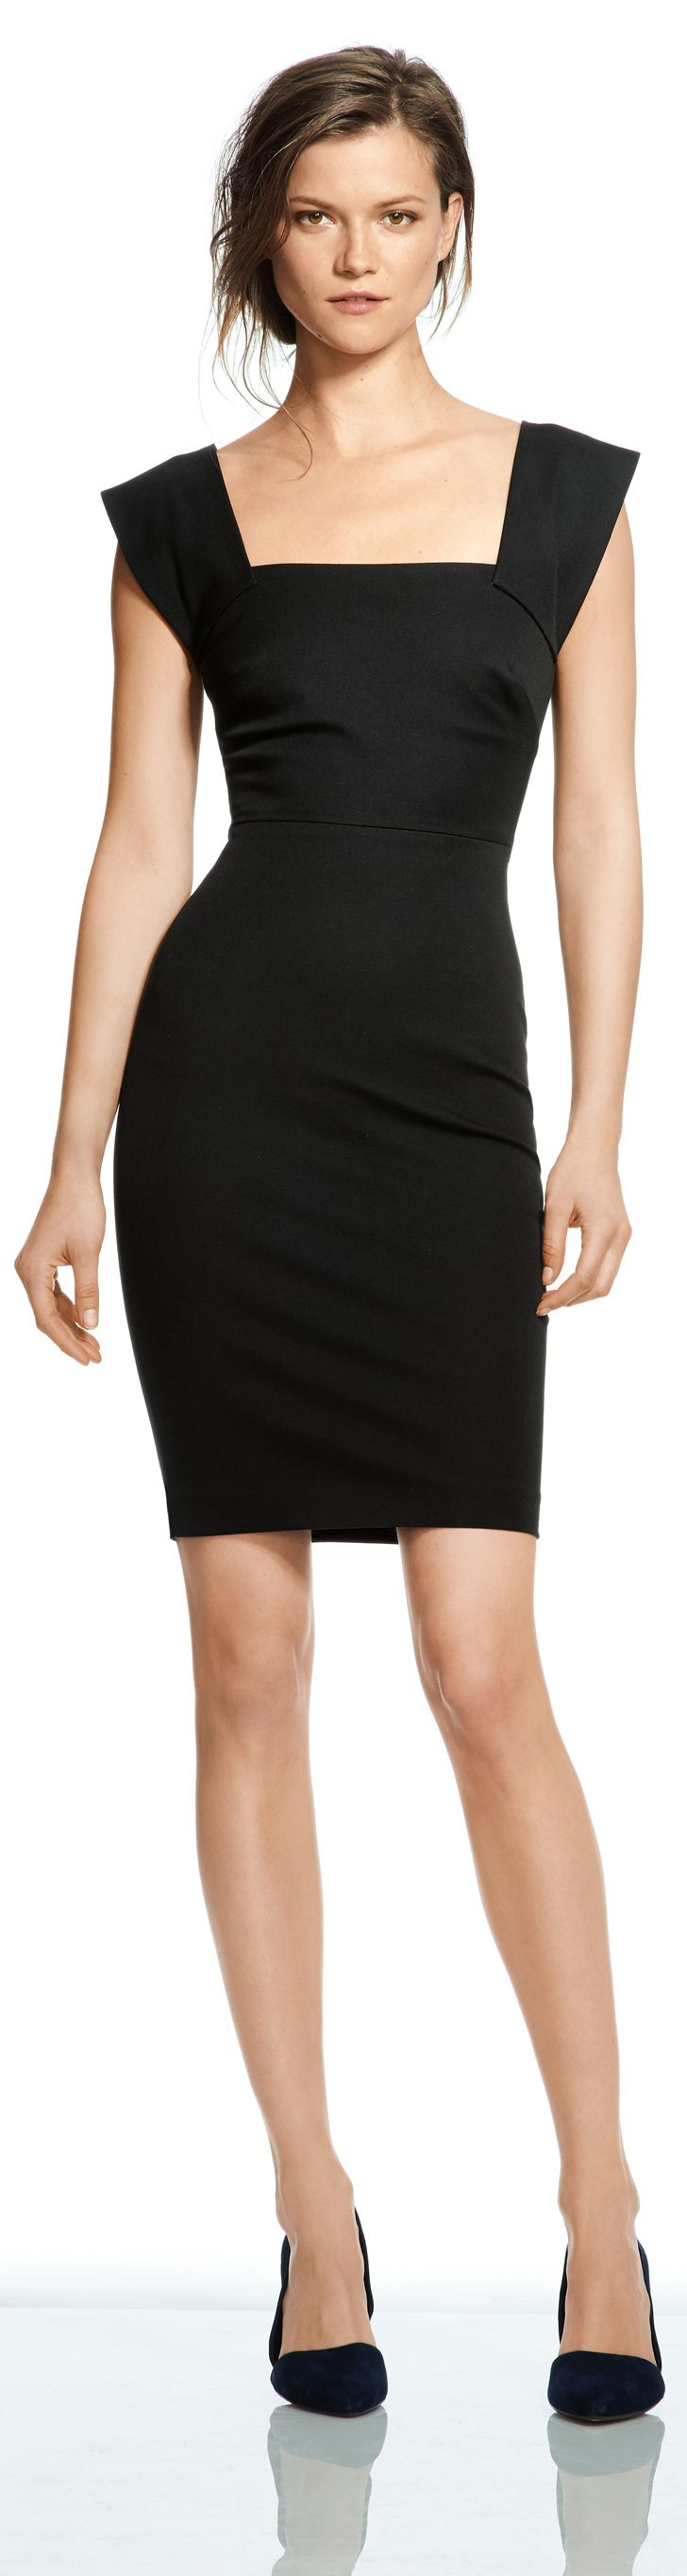 Roland Mouret For Banana Republic. I think all body types would look amazing in this dress.